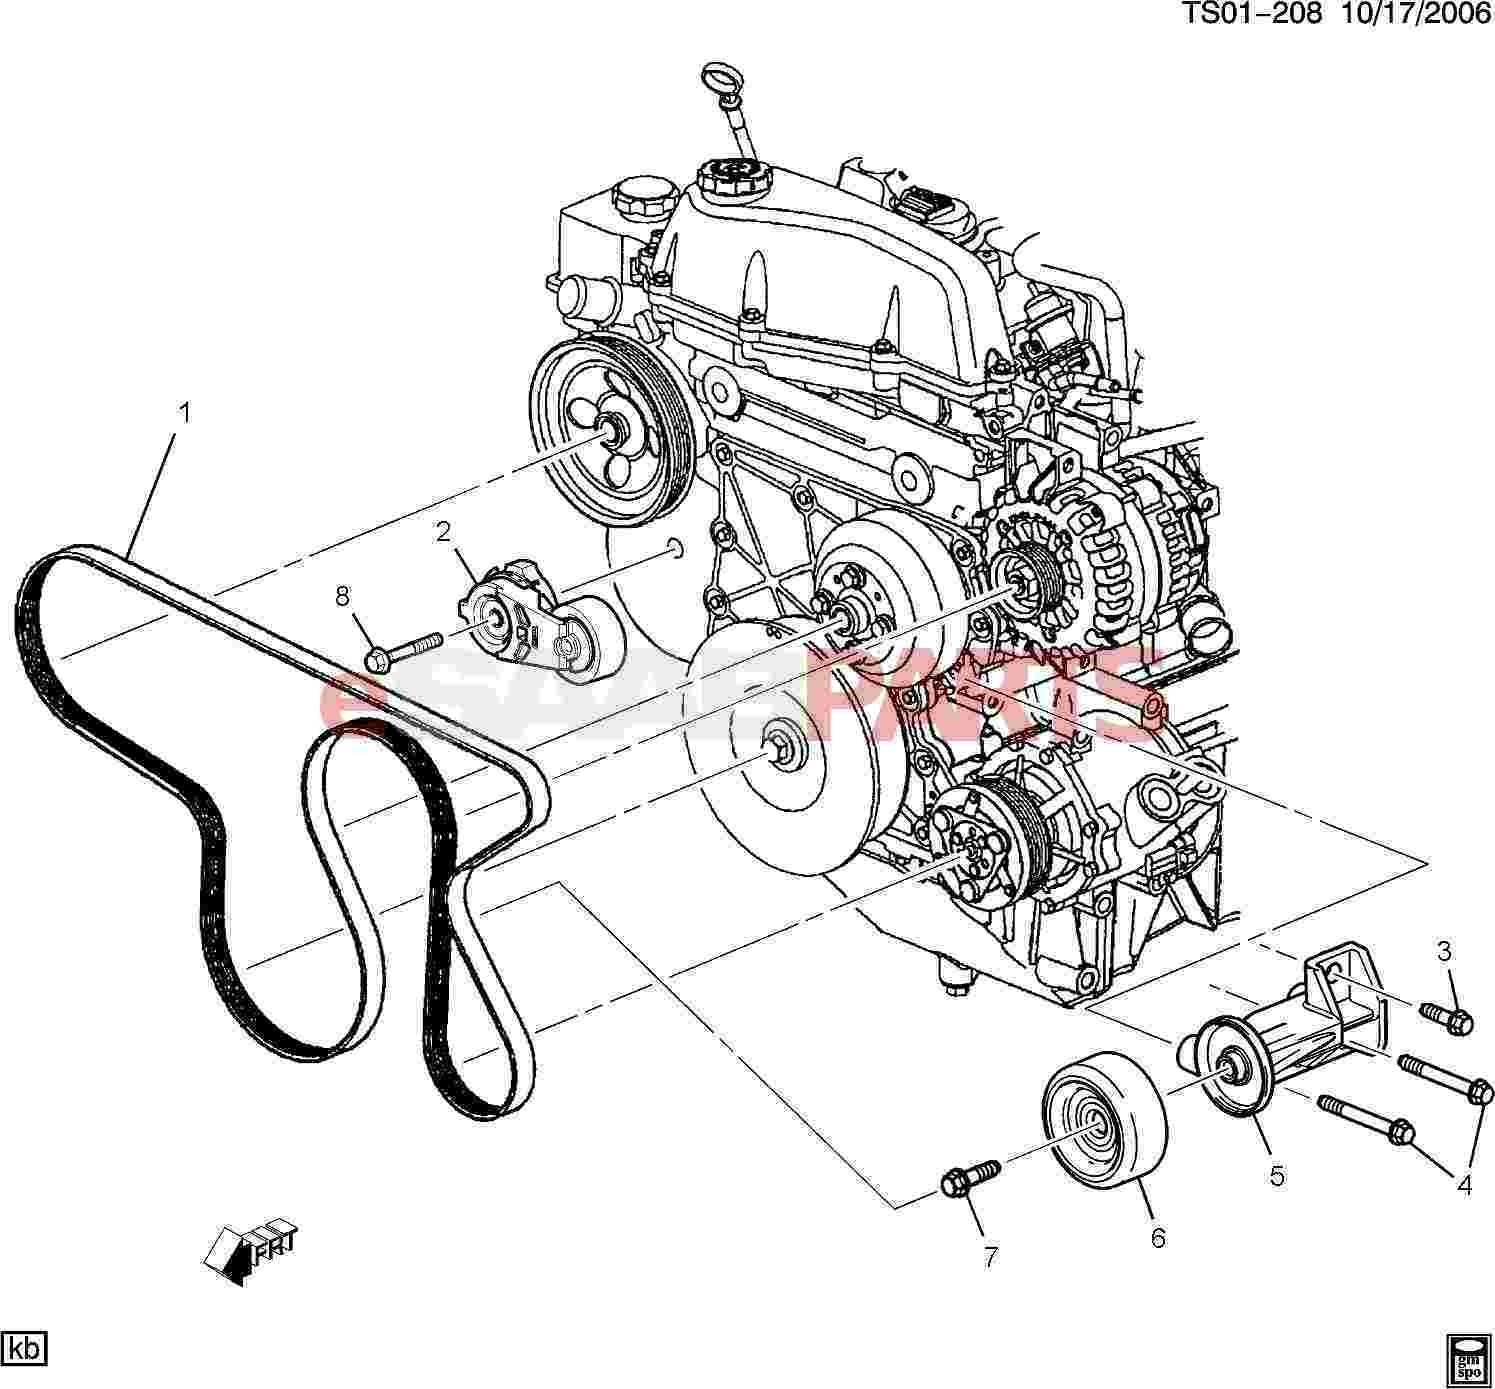 2005 toyota Tacoma Engine Diagram 2001 toyota Ta A Parts Diagram ] Saab Bolt Hfh M10x1 5—35 32thd 22 Of 2005 toyota Tacoma Engine Diagram